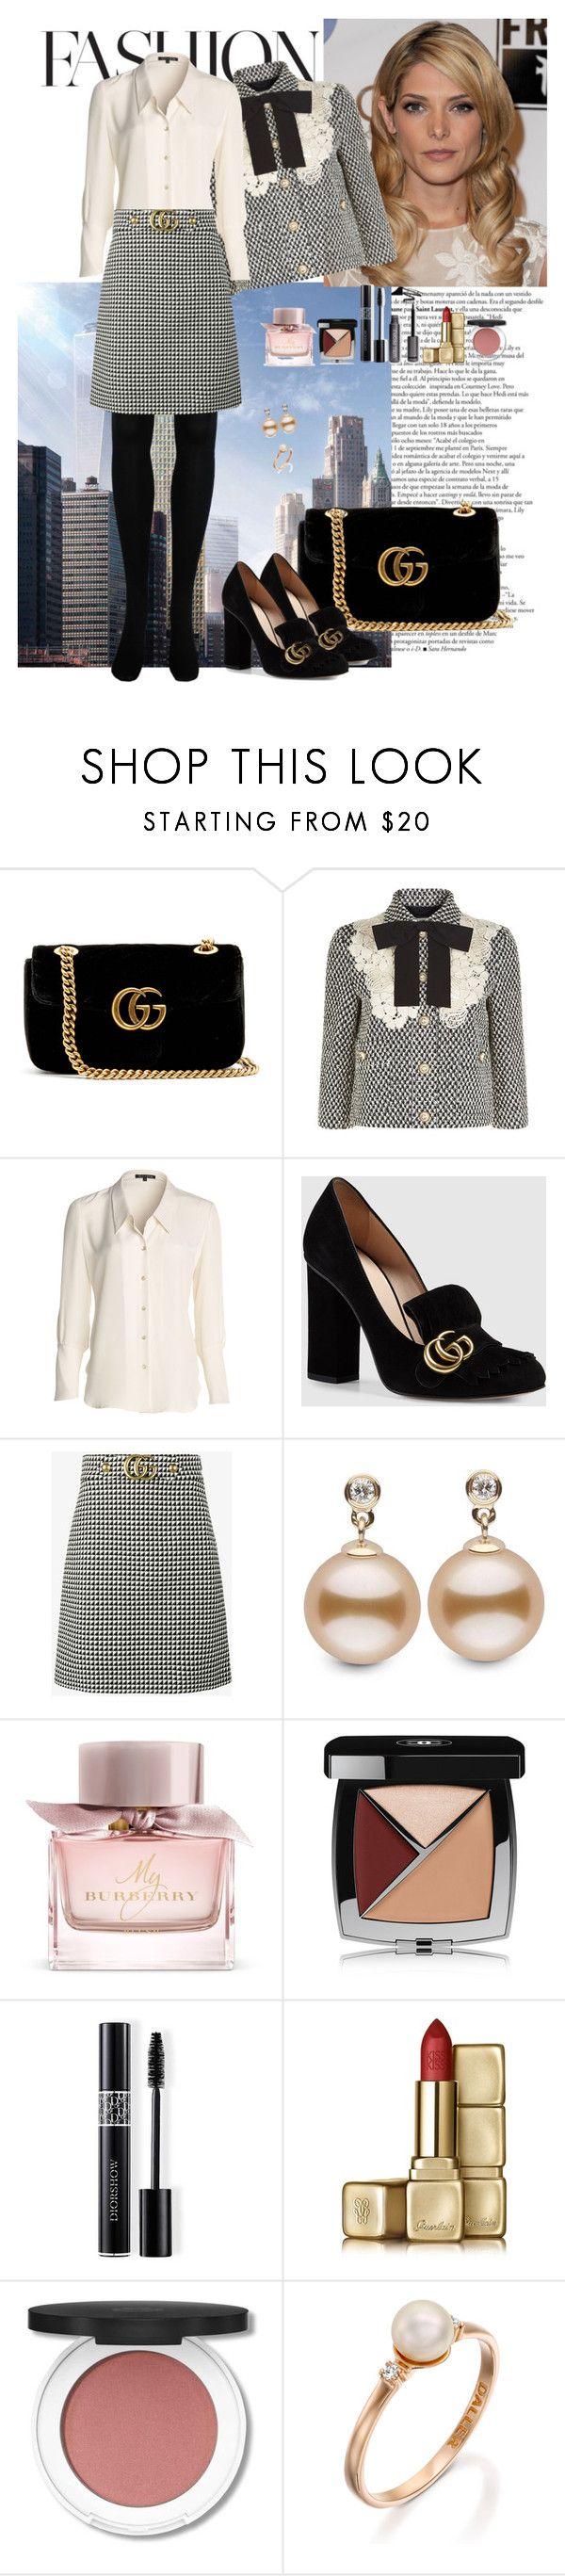 """Untitled #500"" by nympanyela ❤ liked on Polyvore featuring Gucci, NIC+ZOE, Burberry, Chanel, Christian Dior and Guerlain"